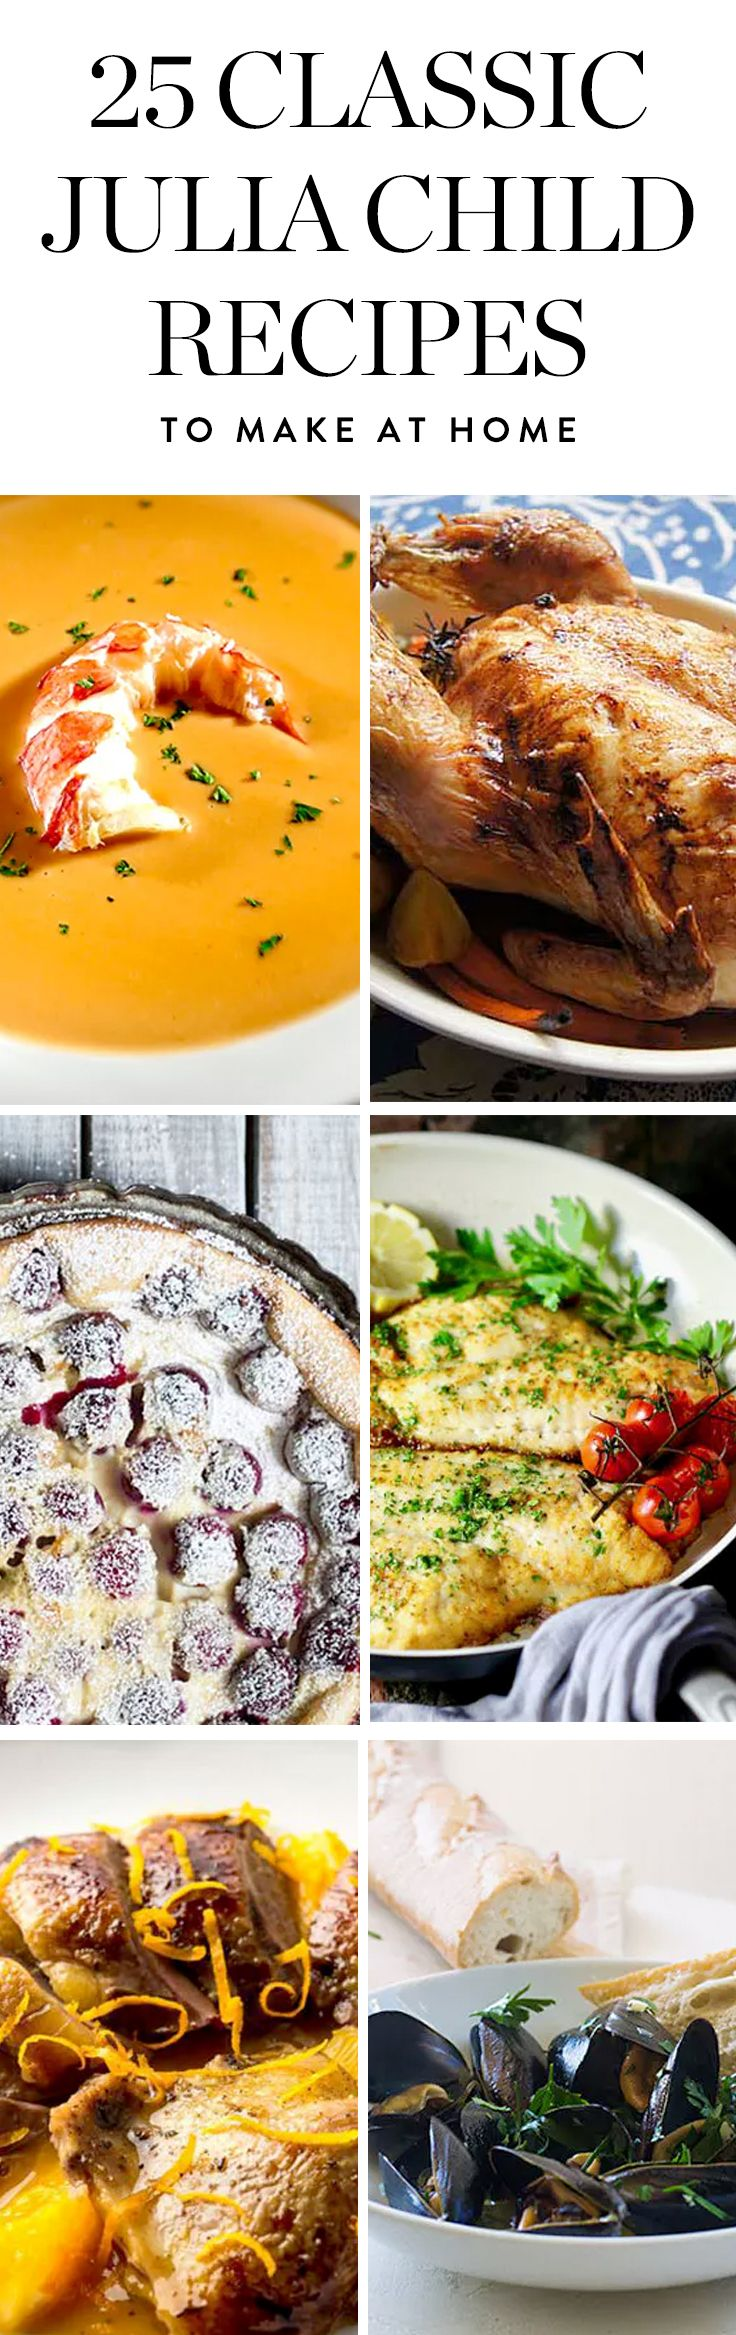 Grab your lacy apron and a baguette and prepare to go back in time to the 1950s French countryside. We're bringing you 25 classic Julia Child recipes that are sure to please.